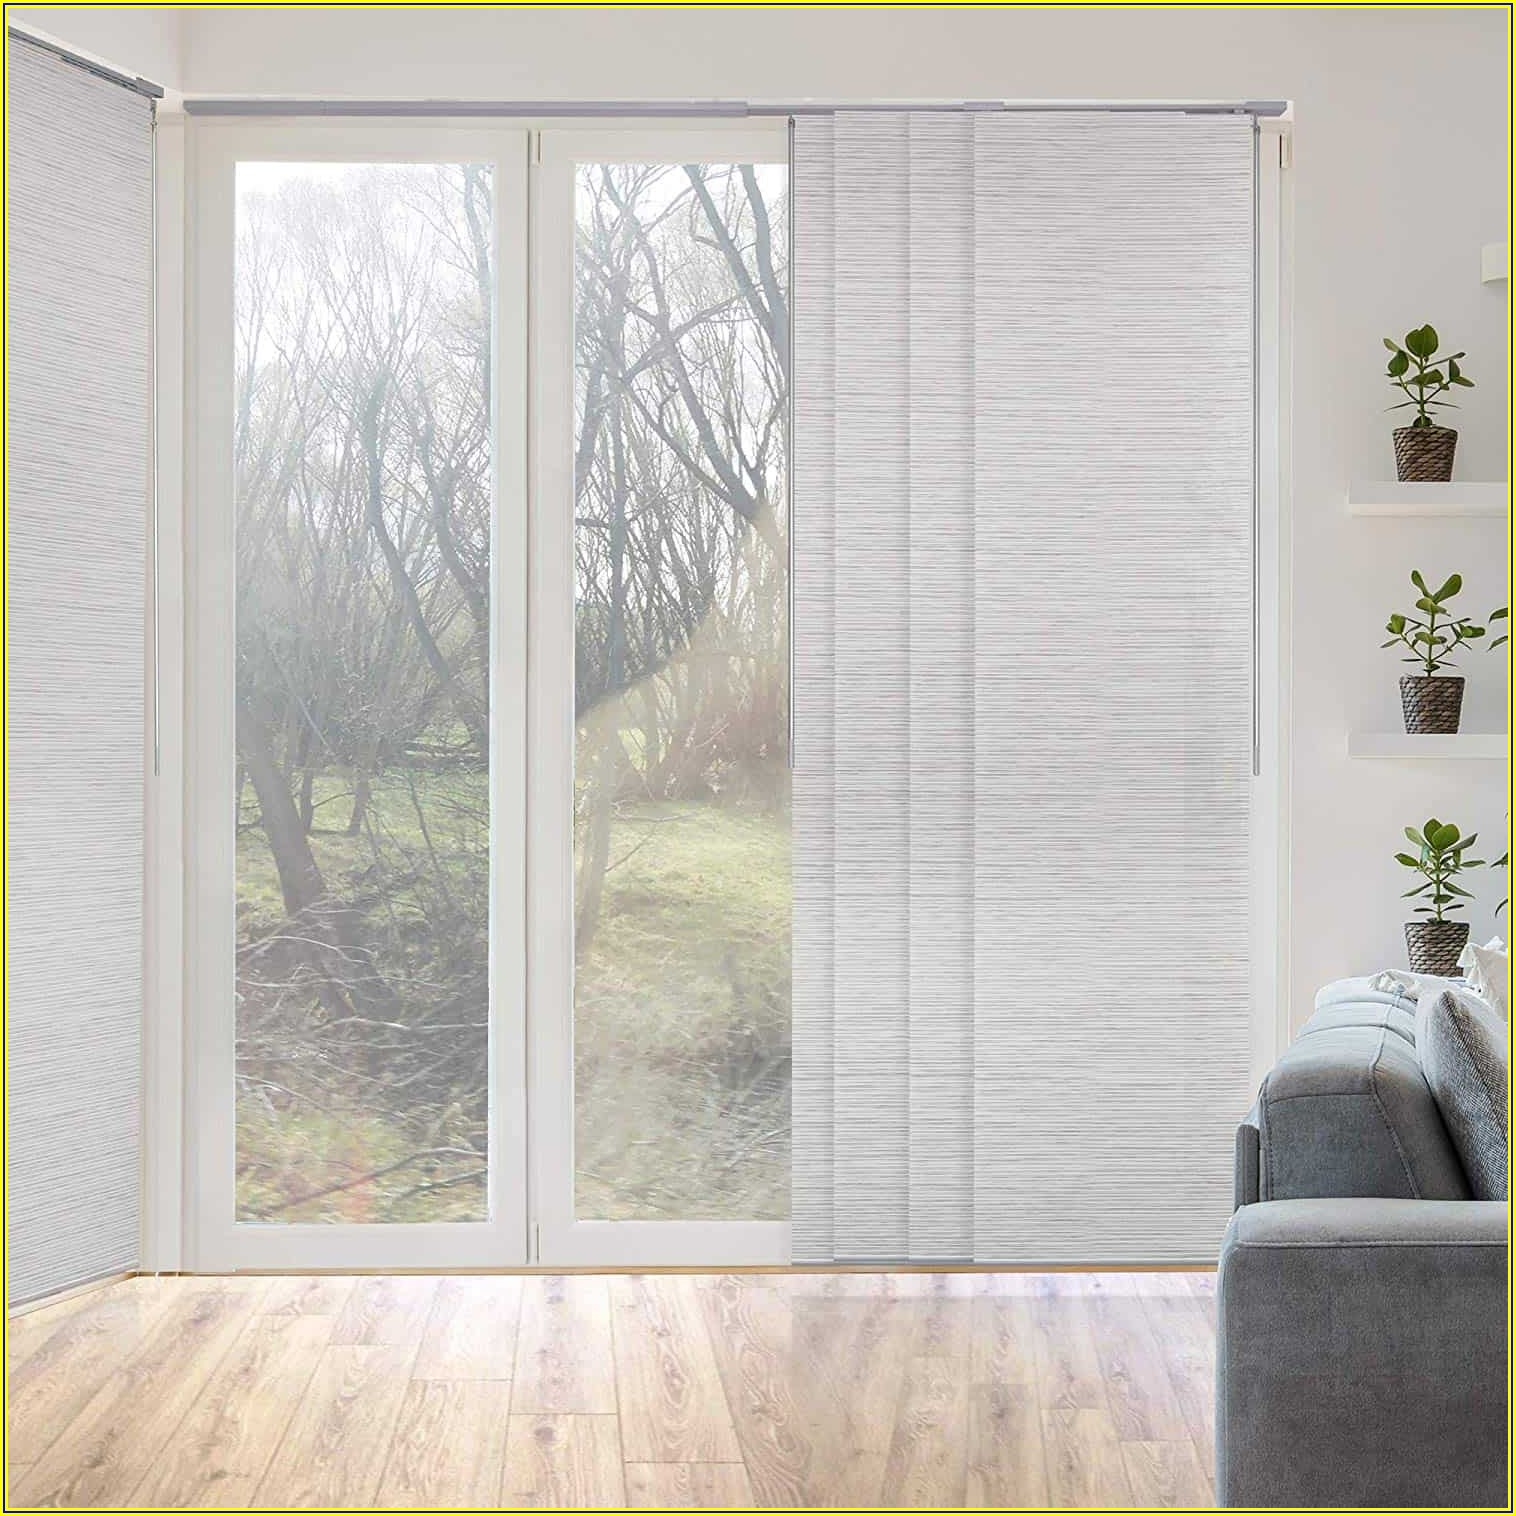 Pictures Of Patio Doors With Blinds